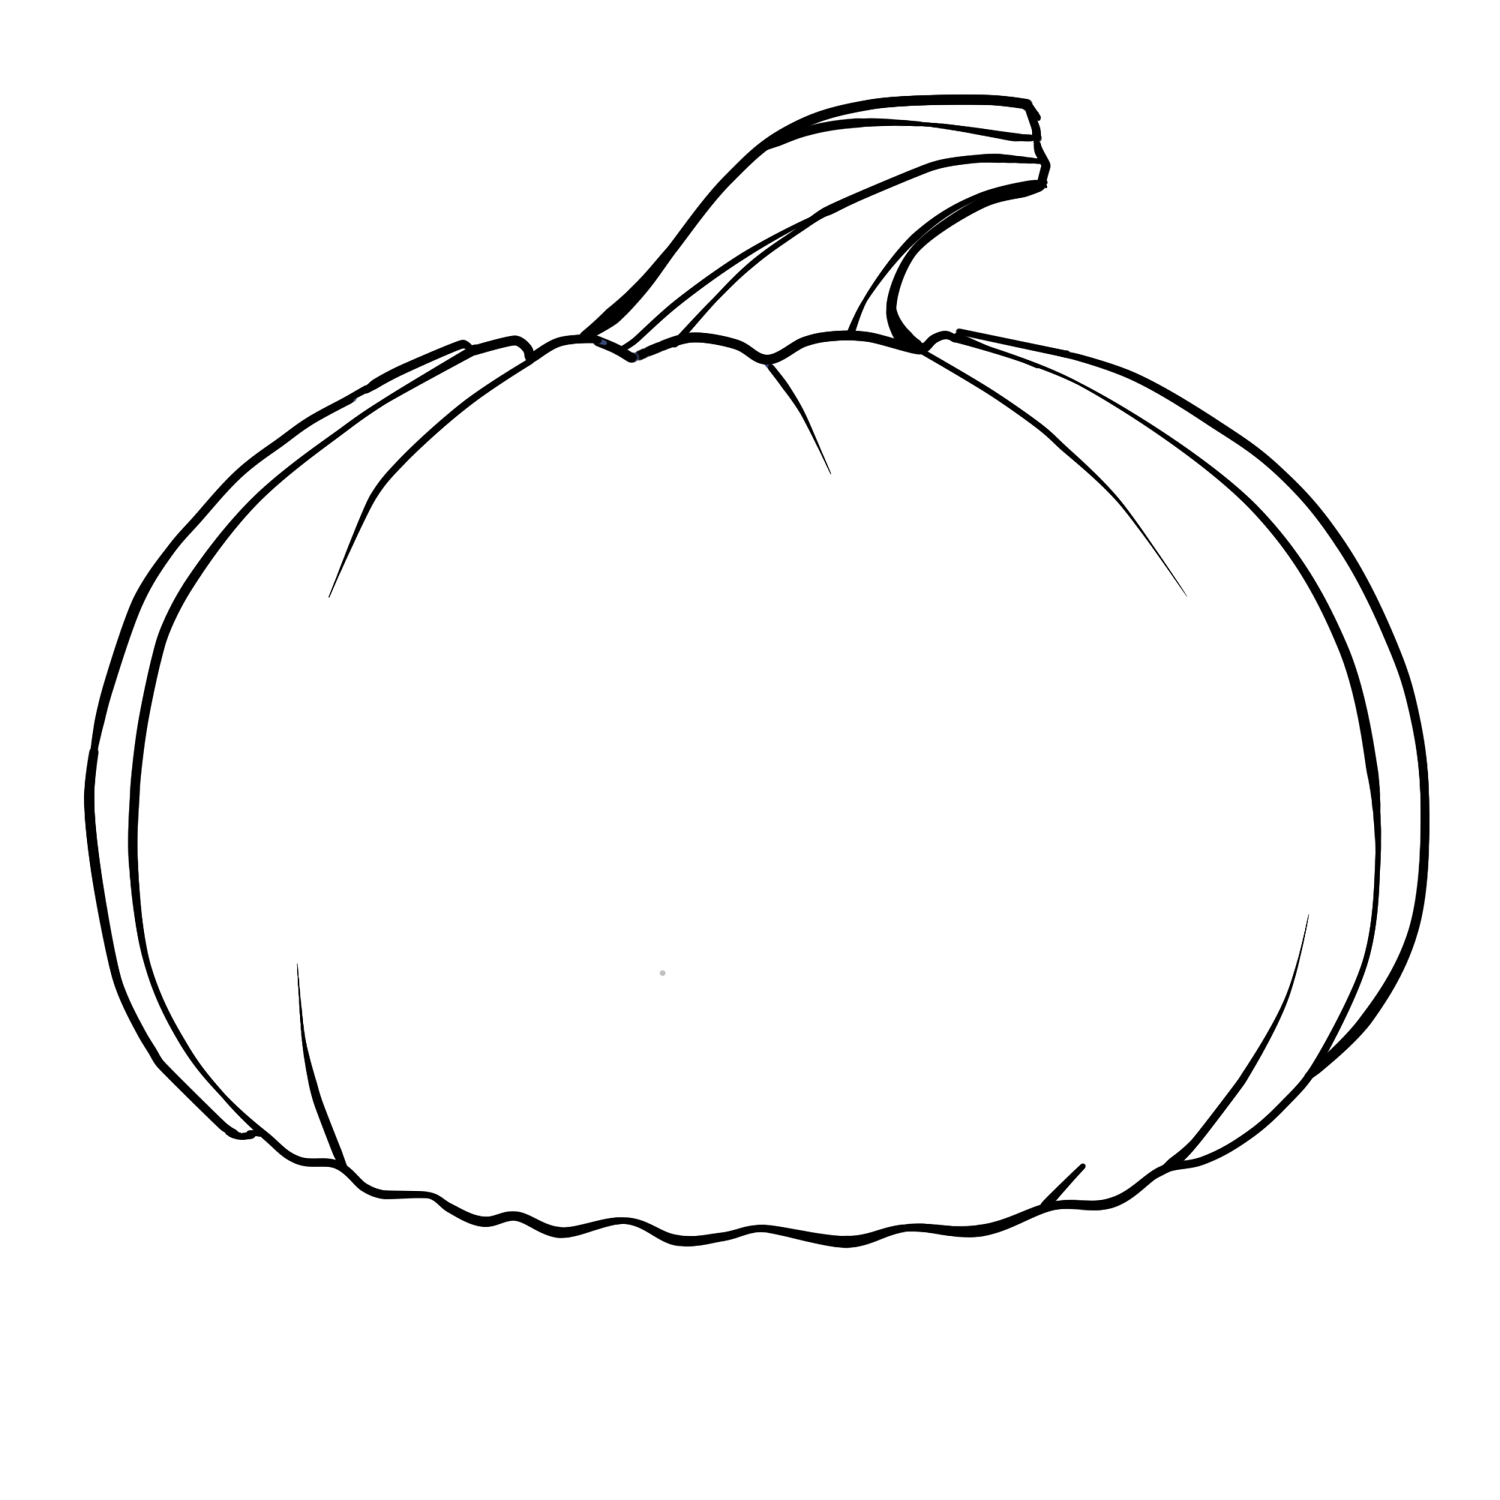 Free Printable Pumpkin Coloring Pages For Kids | Applique - Pumpkin Shape Template Printable Free